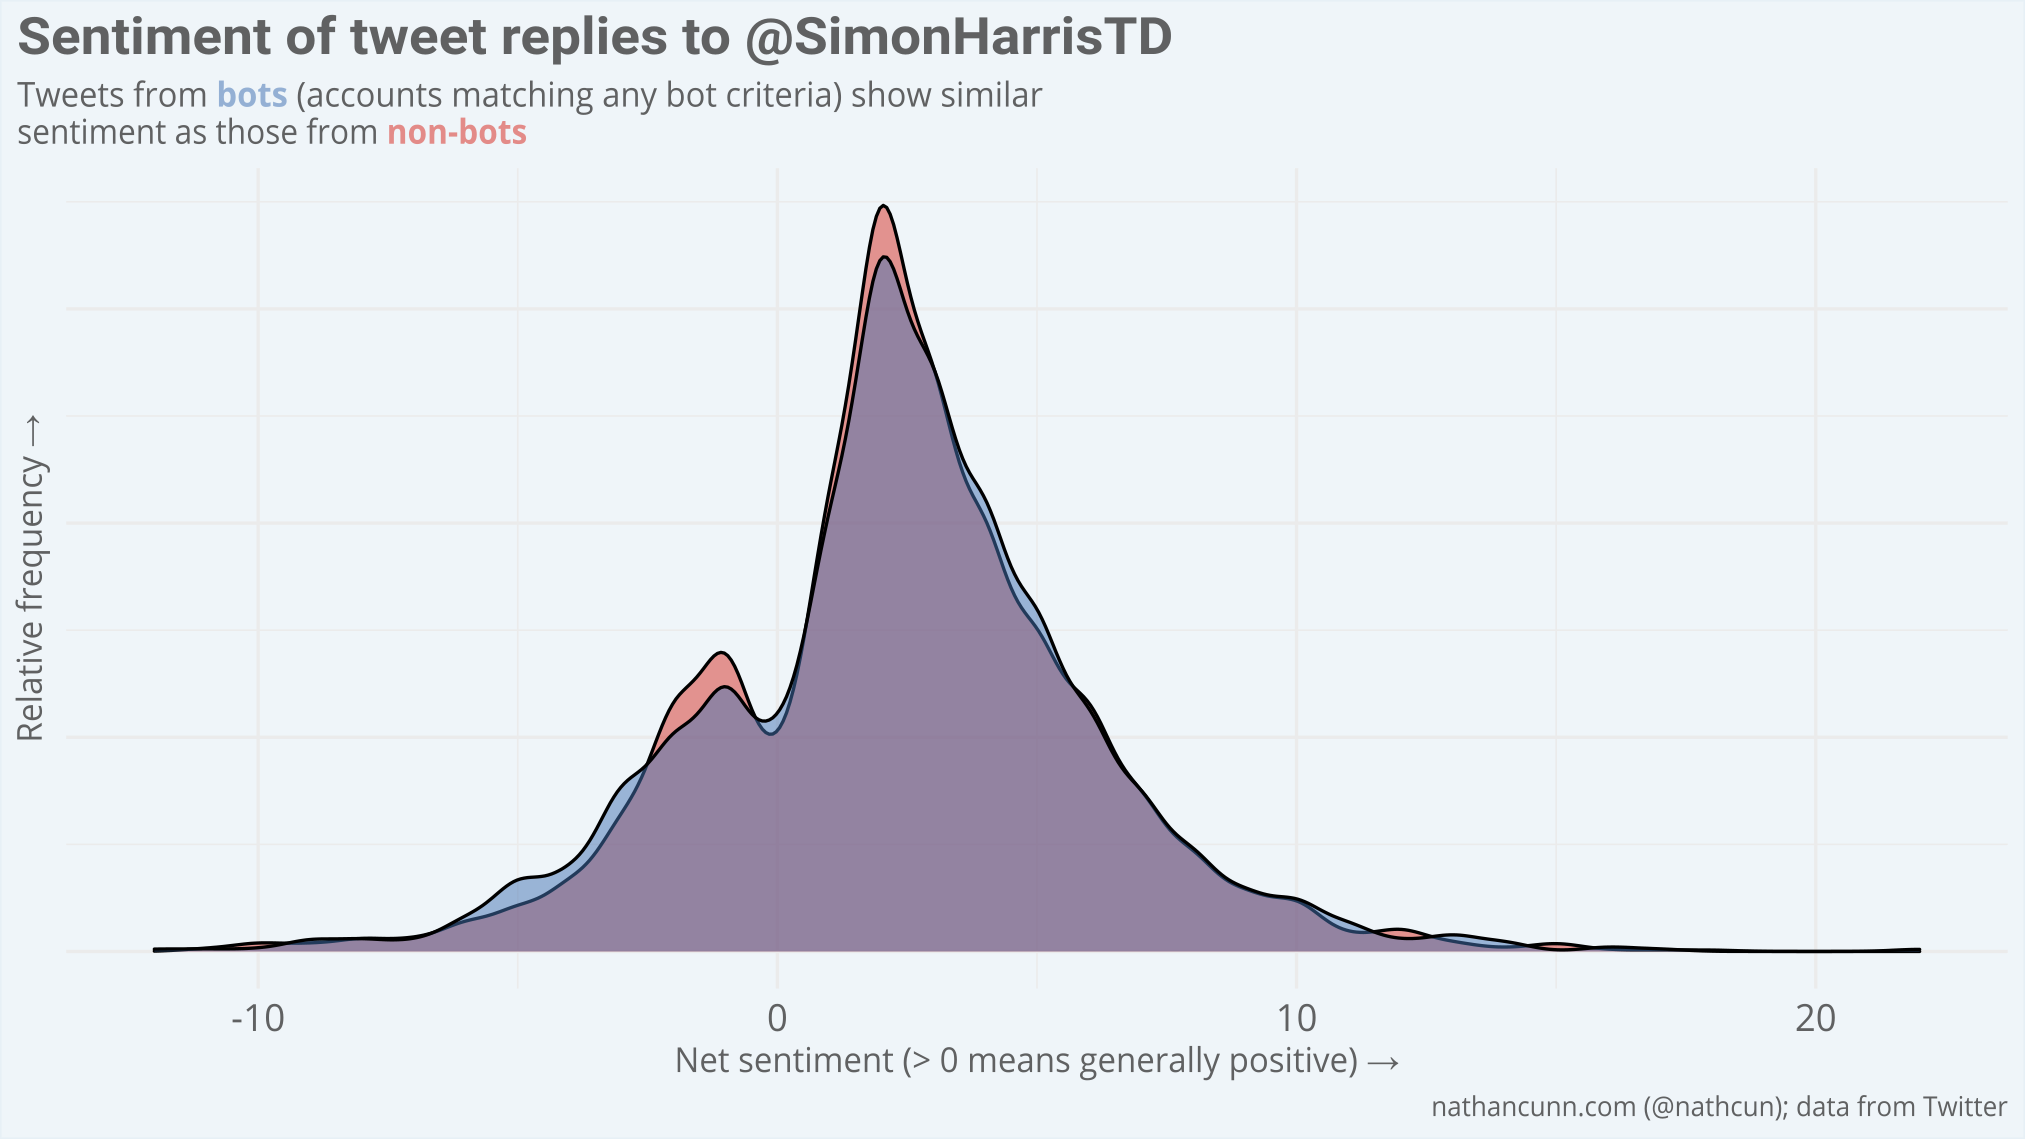 A density plot of the sentiment score of tweet replies to @SimonHarrisTD broken down by supposed bots and non-bots where bots are identified by matching any of the proposed bot criteria. No difference is observed between the two groups.